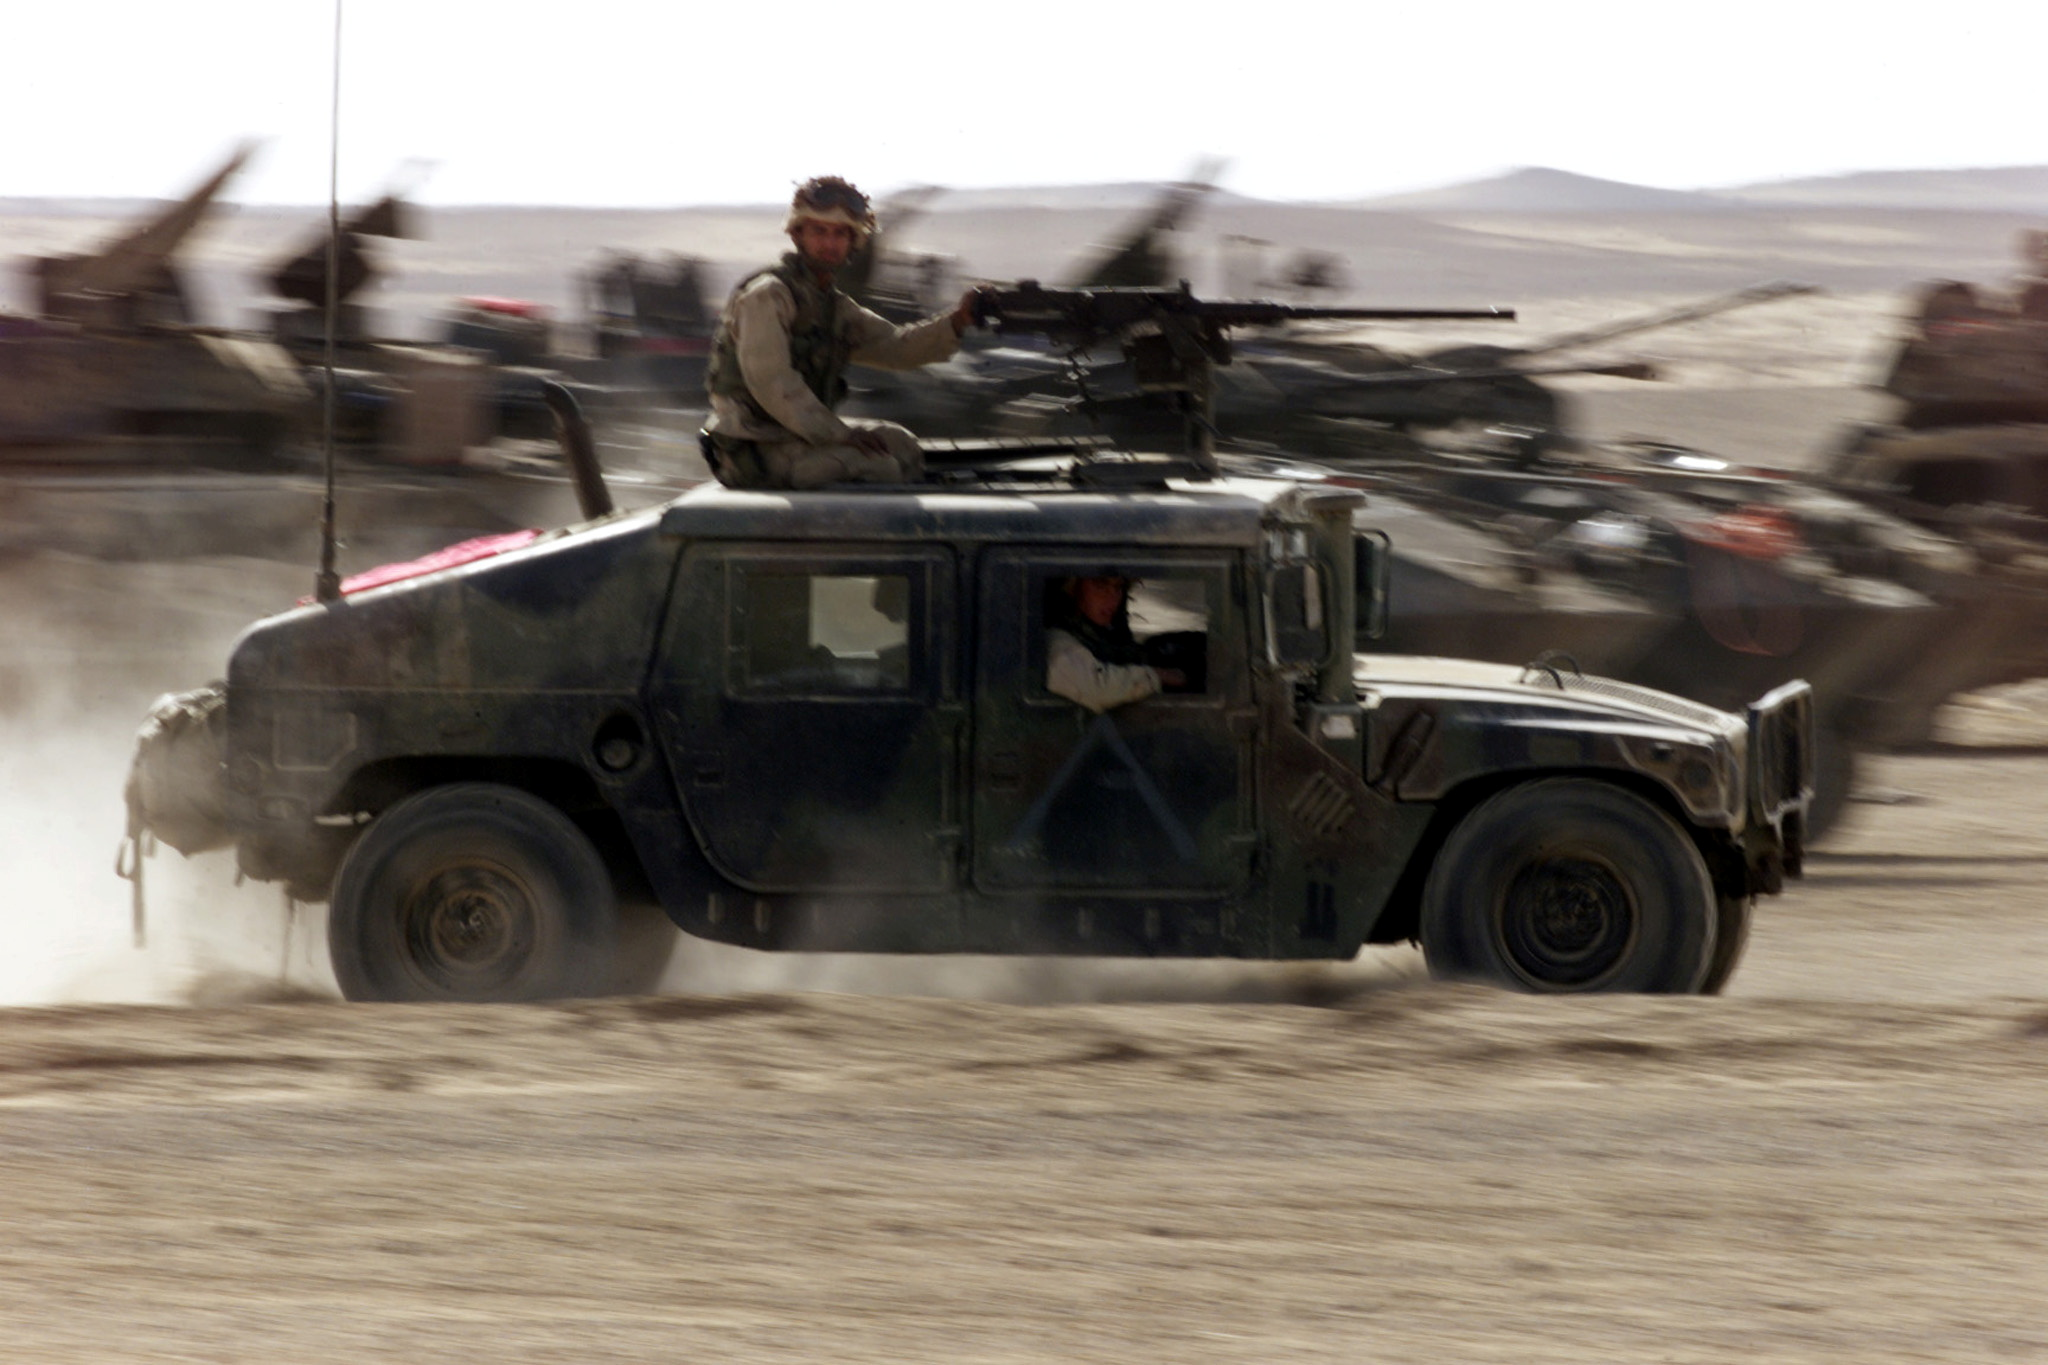 A U.S. Marine Humvee kicks up dust as it crosses a group of Marine LAVs (Light Armored Vehicles) as it leaves on patrol from a Marine base in southern Afghanistan December 2, 2001.   REUTERS/Jim Hollander/File Photo